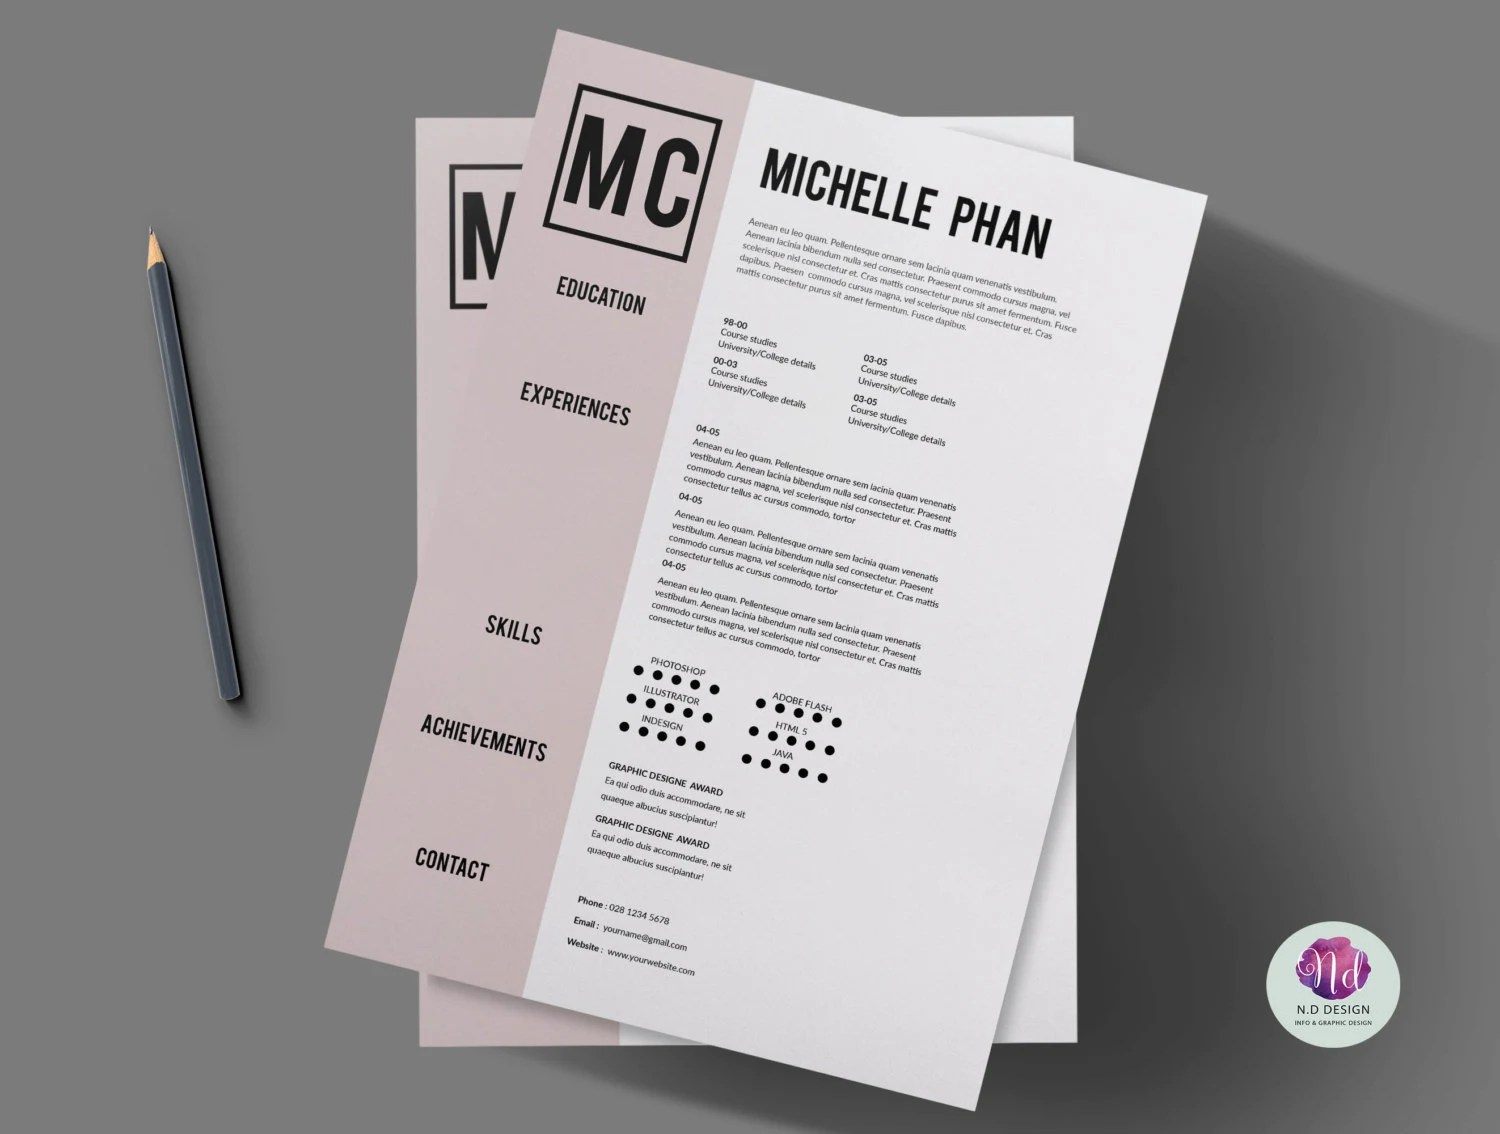 Modern CV template cover letter template references 1 page CV template    cover letter template   references template     1  page resume   professional CV   job application  minimal CV design